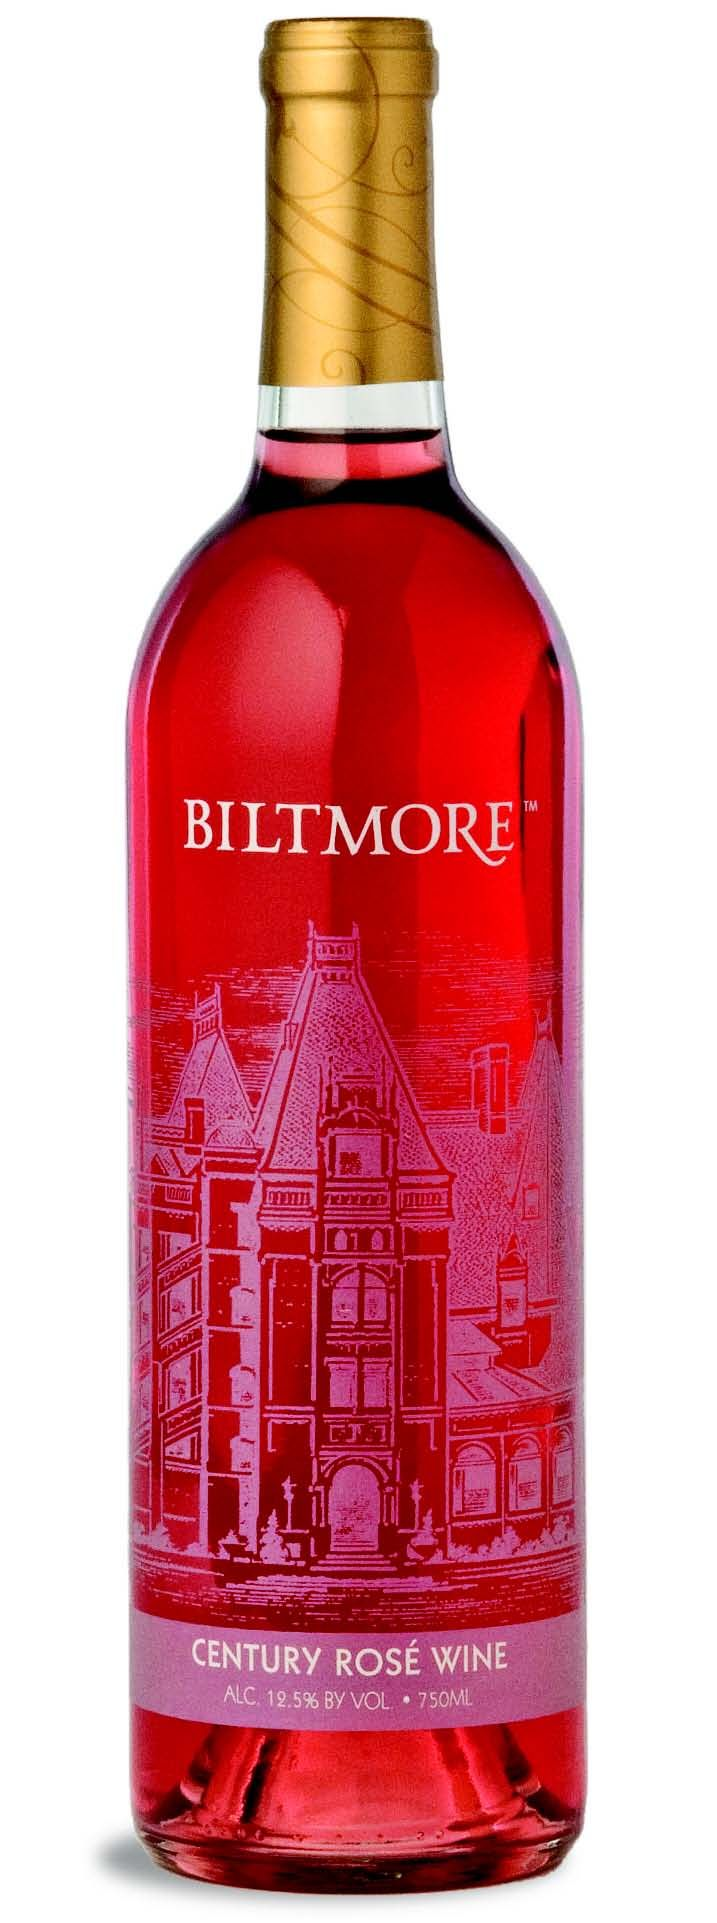 The best wine I ever had was from Biltmore Estate, and I haven't been able to find it again! Tasted like watermelon and strawberries.